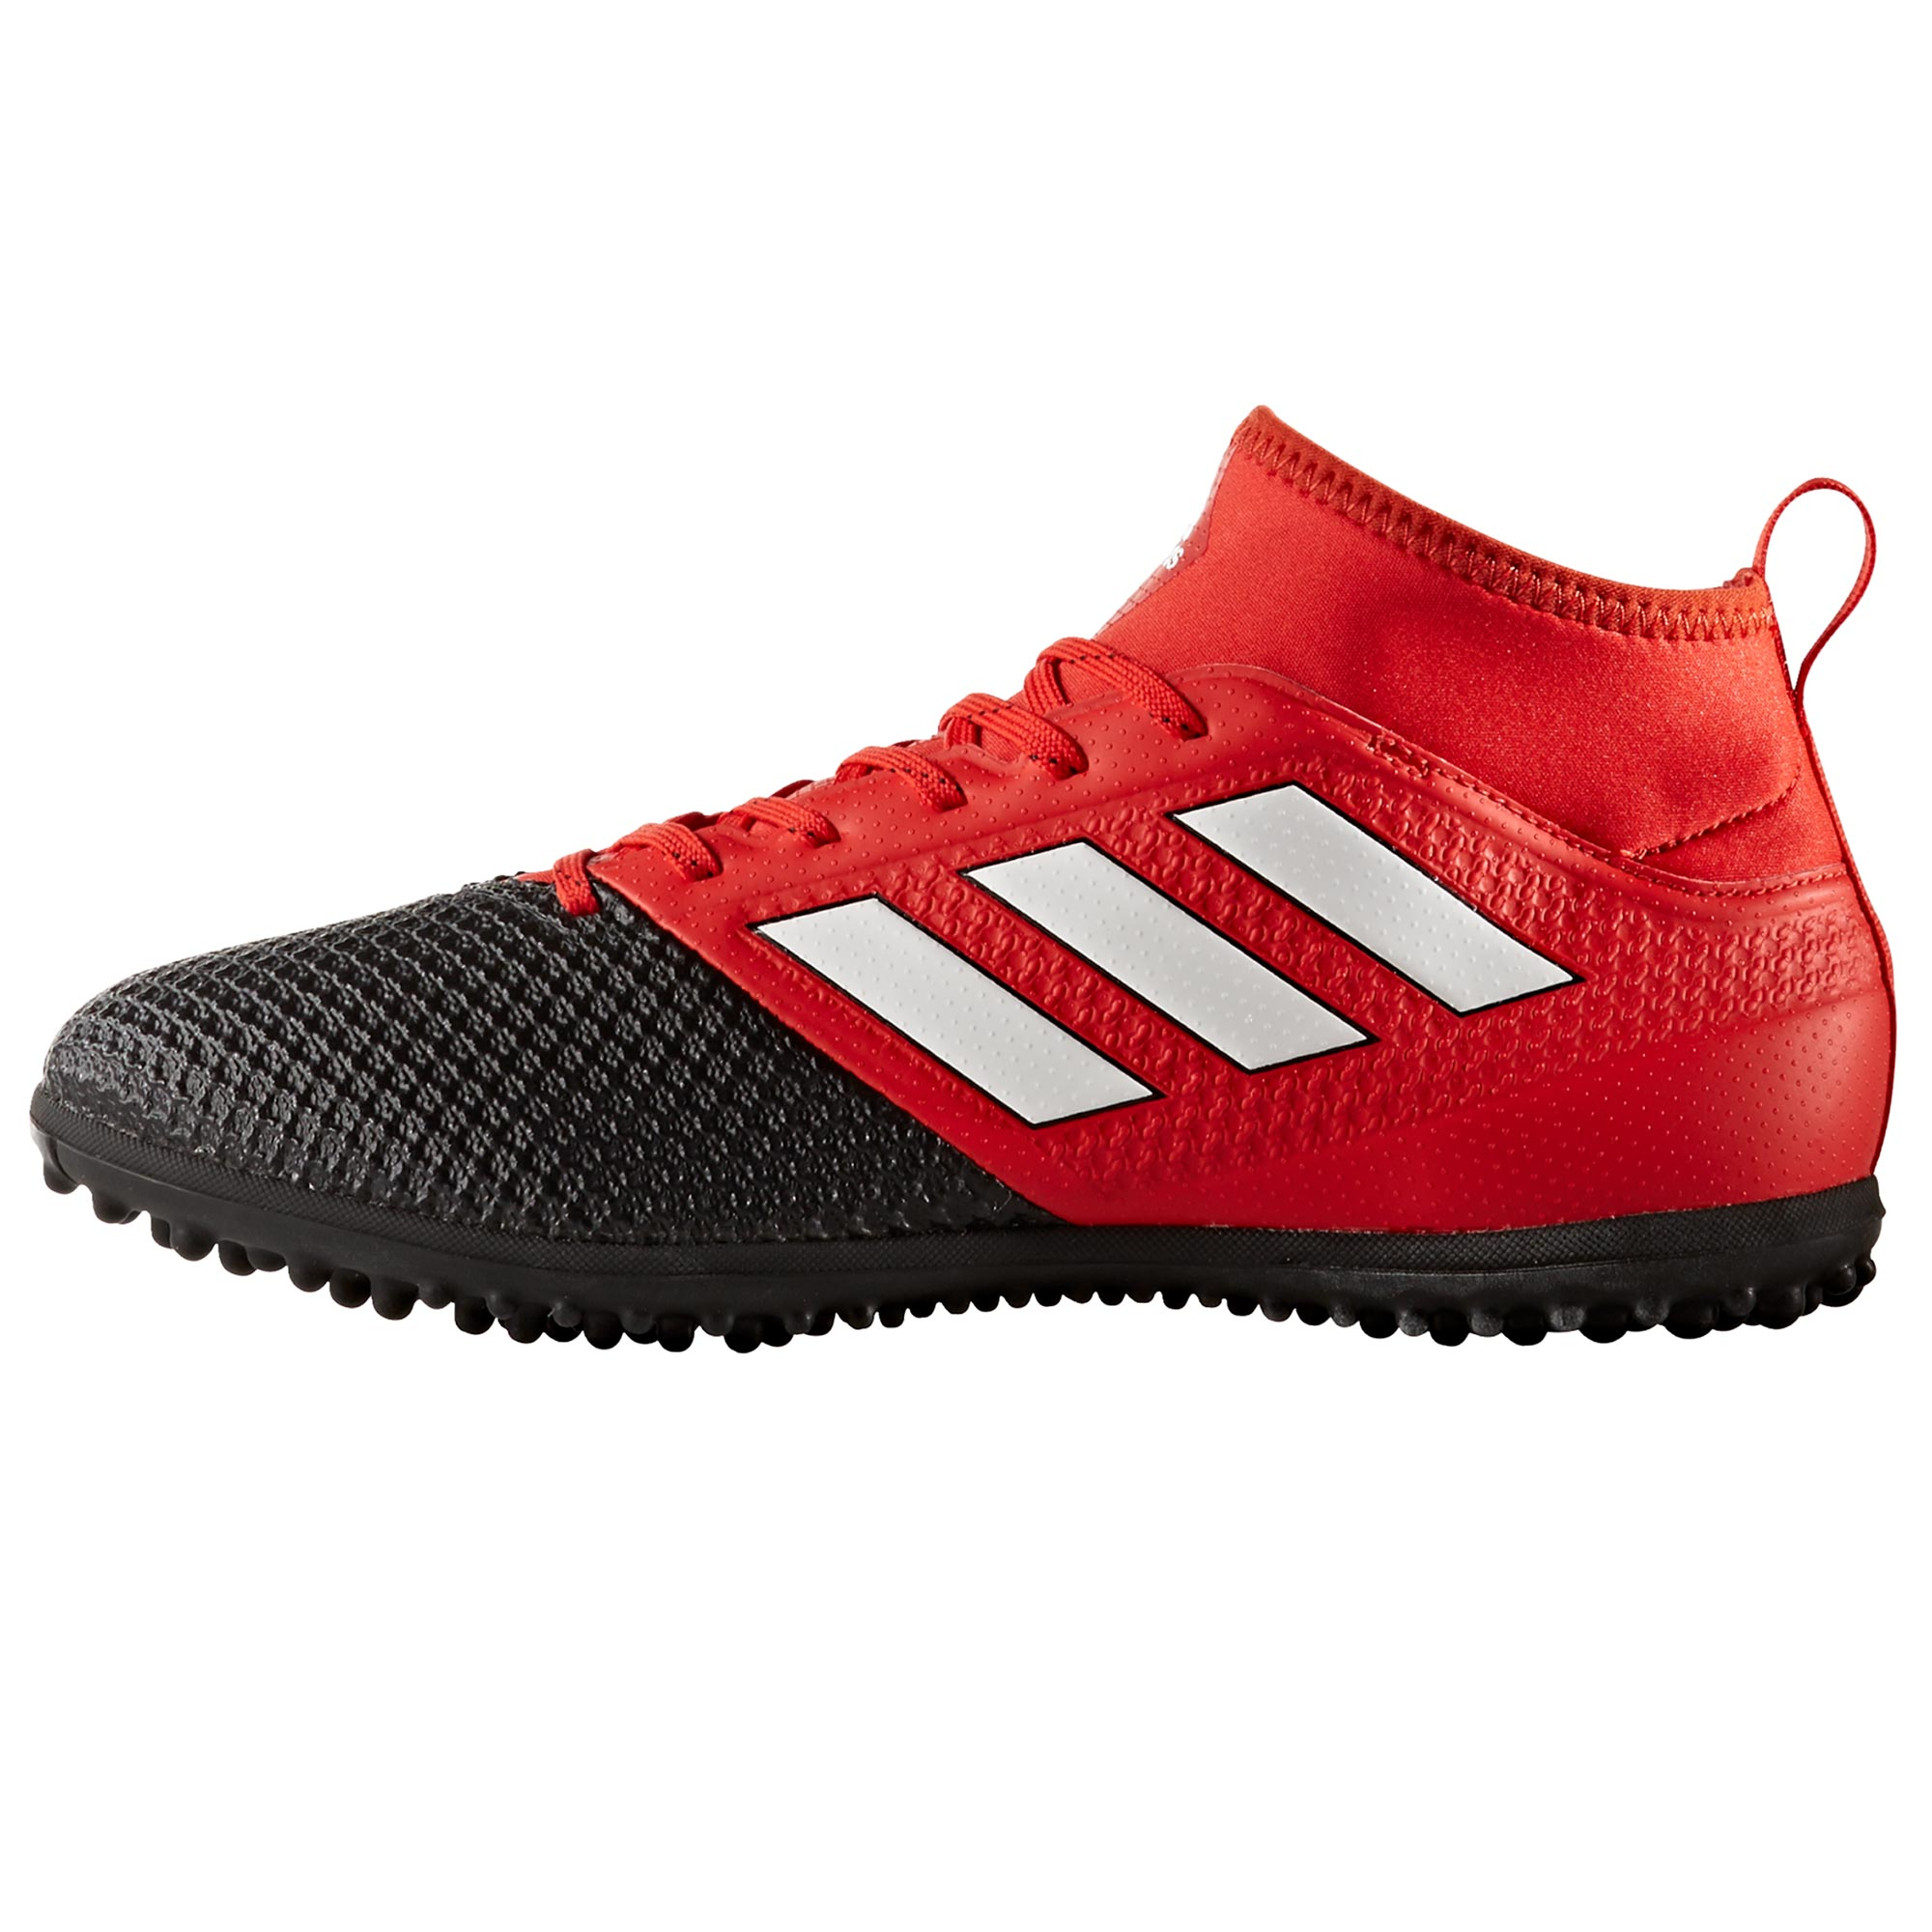 Image of adidas Ace 17.3 Primemesh Astroturf Trainers - Red/White/Core Black